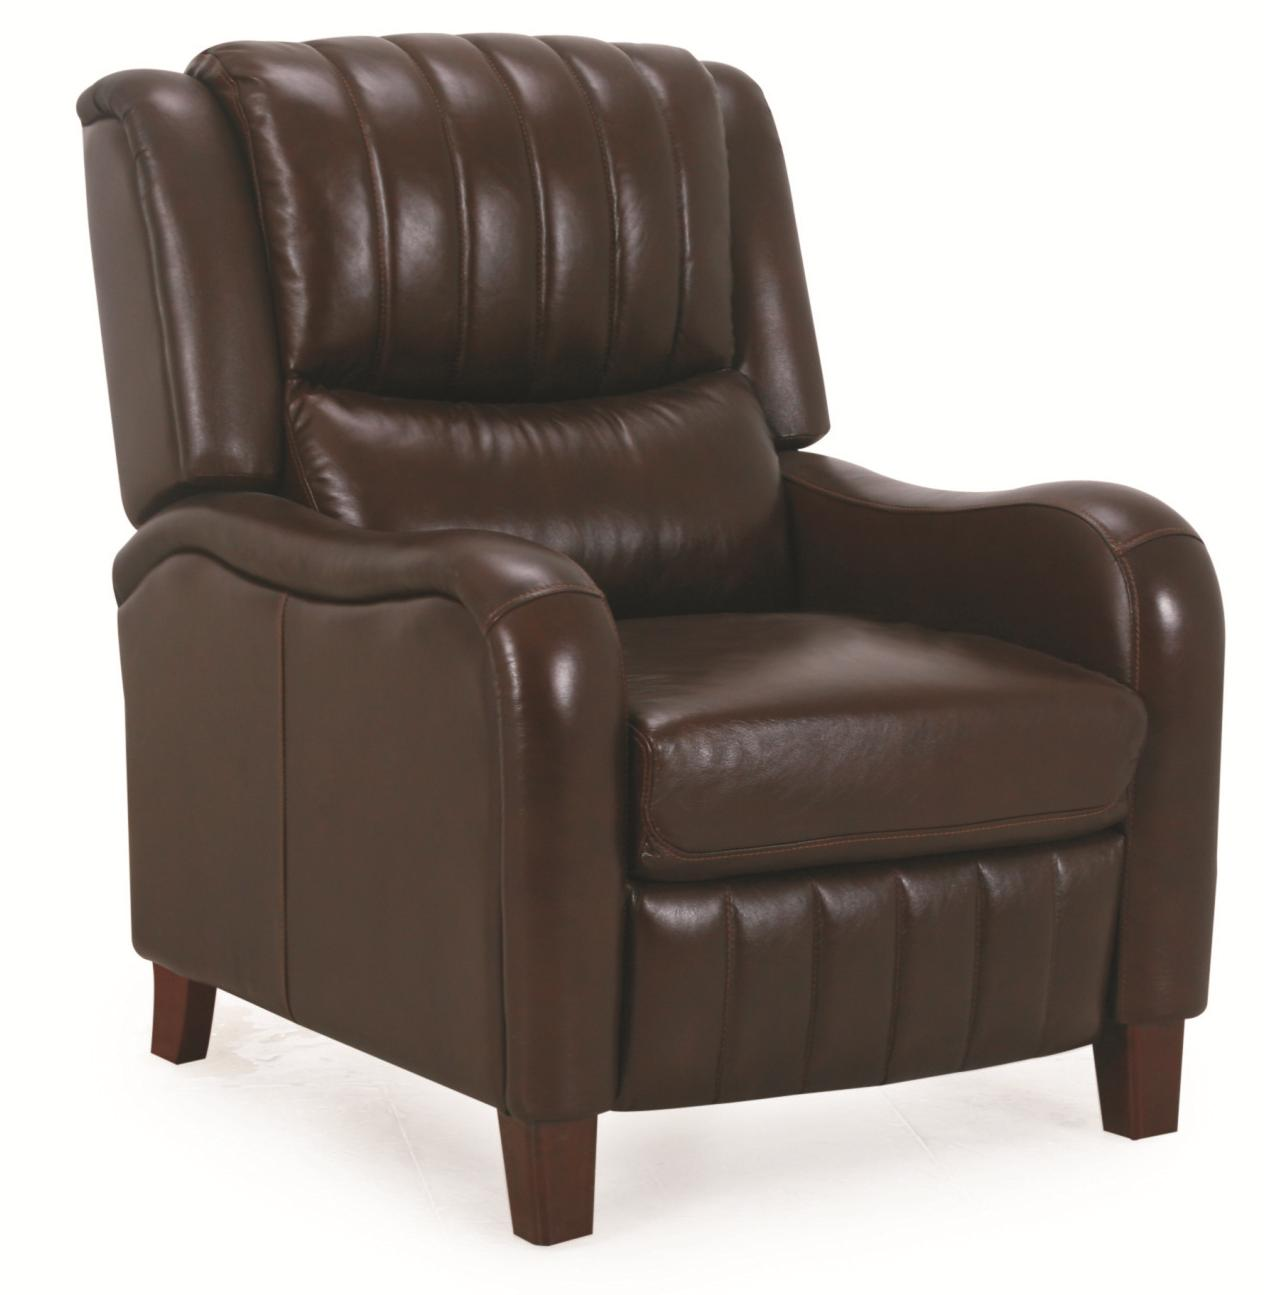 695 Push Back Recliner by Cheers at Lagniappe Home Store